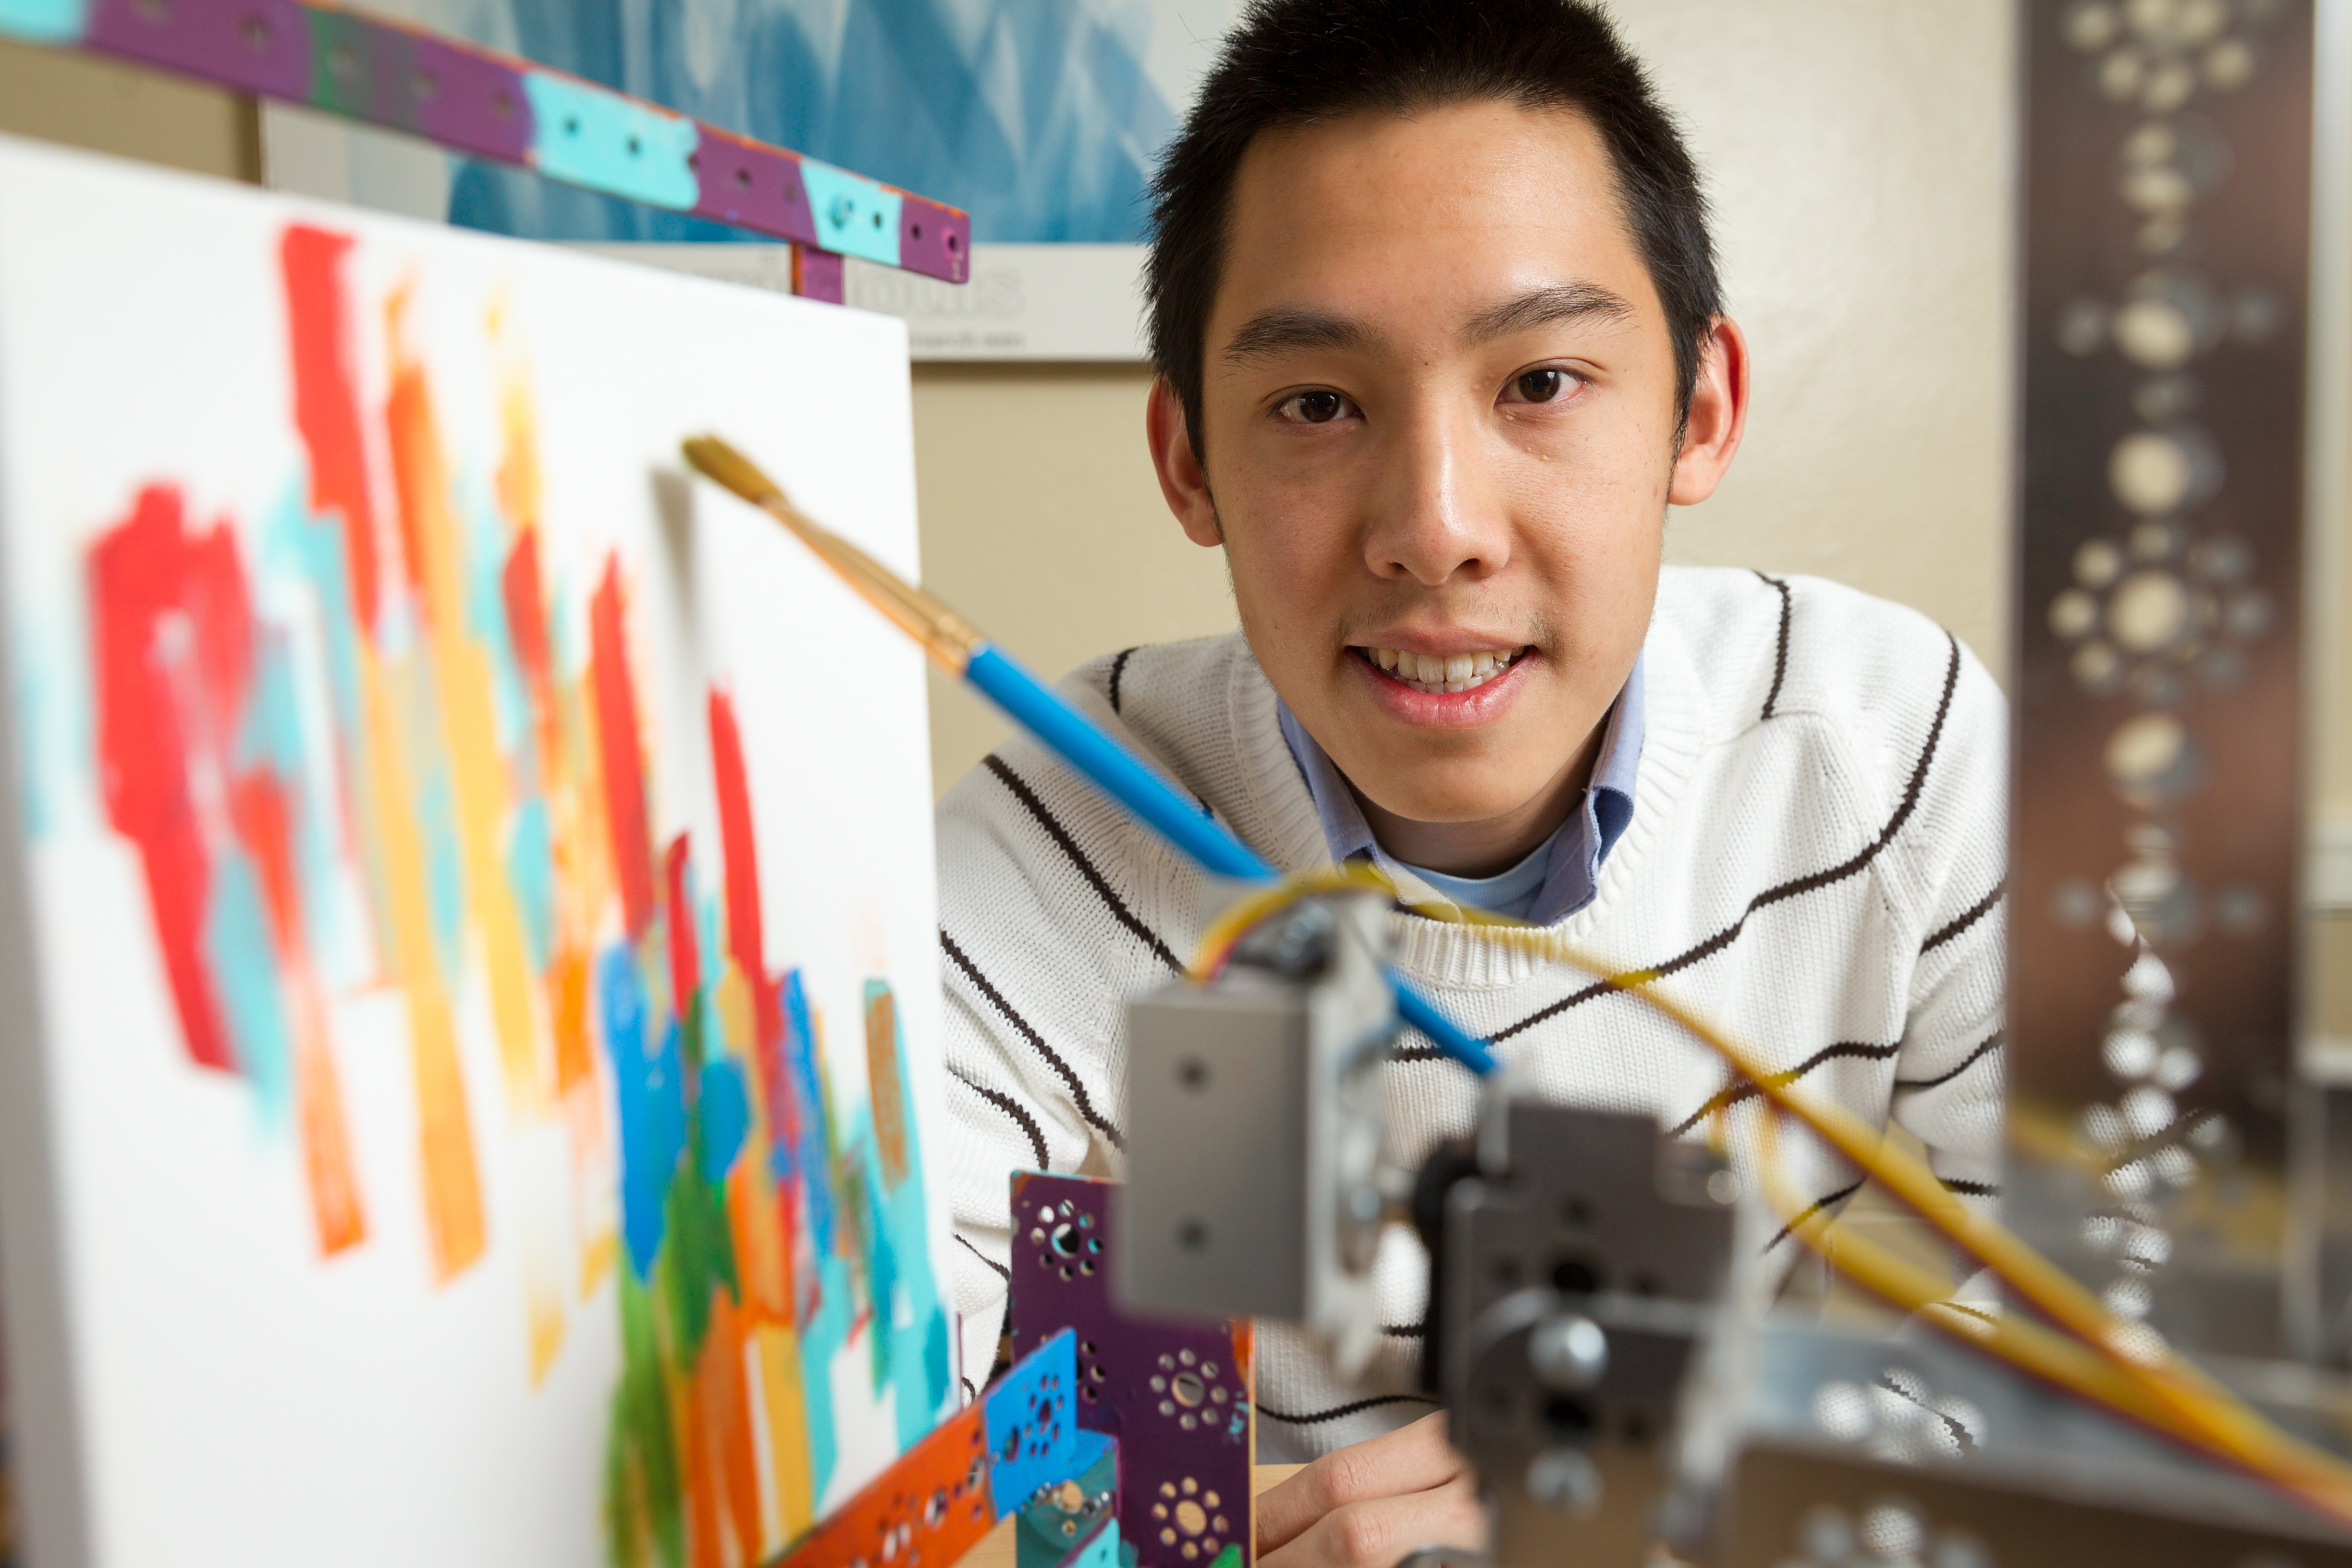 Student Research Painting Robot, Tim Lee, Work of Art